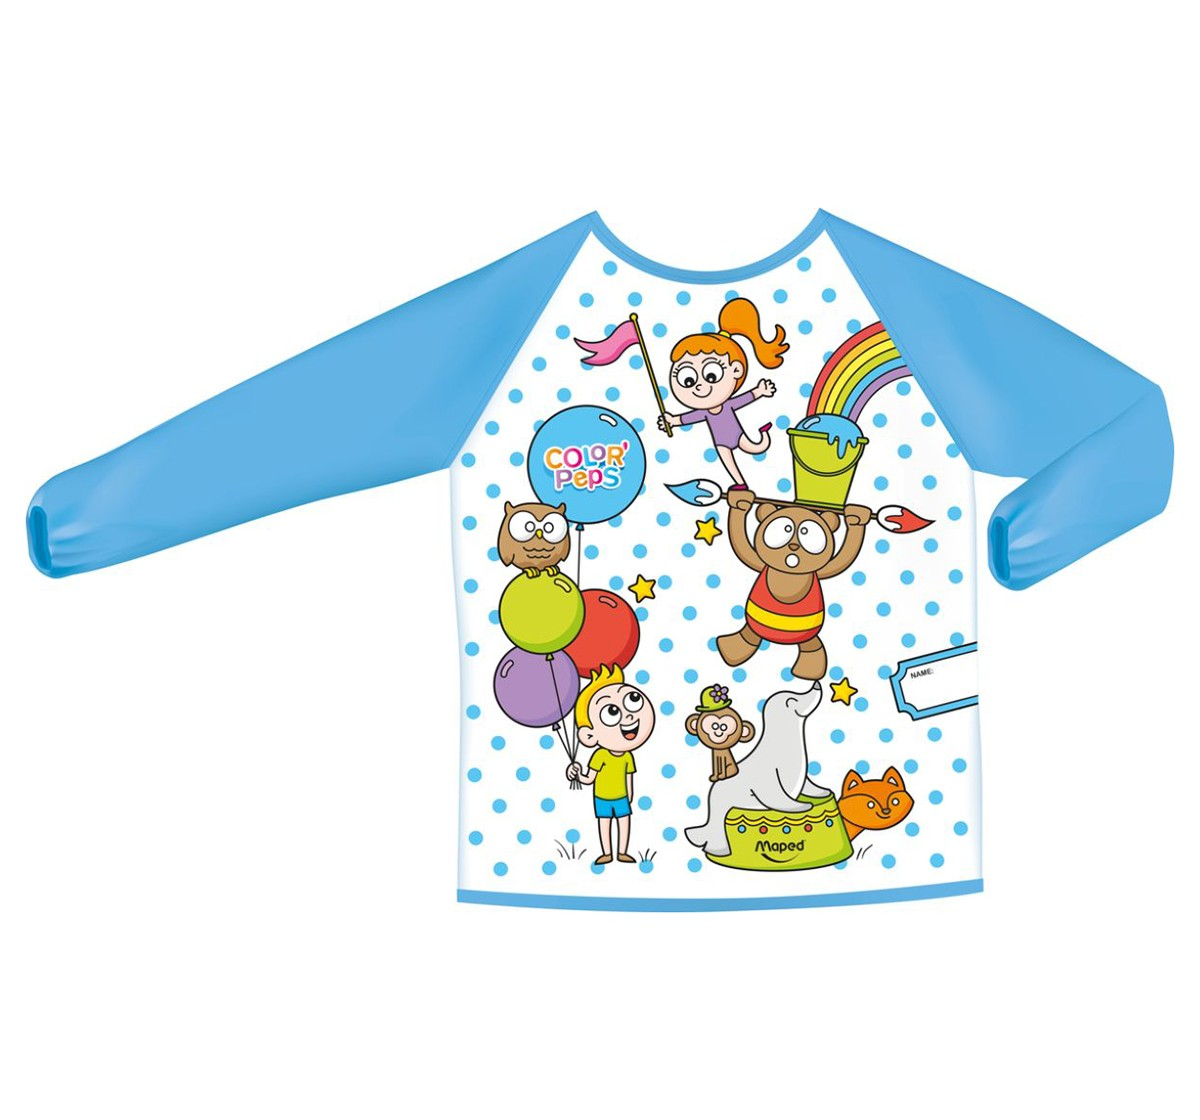 Maped Early Age Painting Apron, Unisex 4Y+ (Blue)